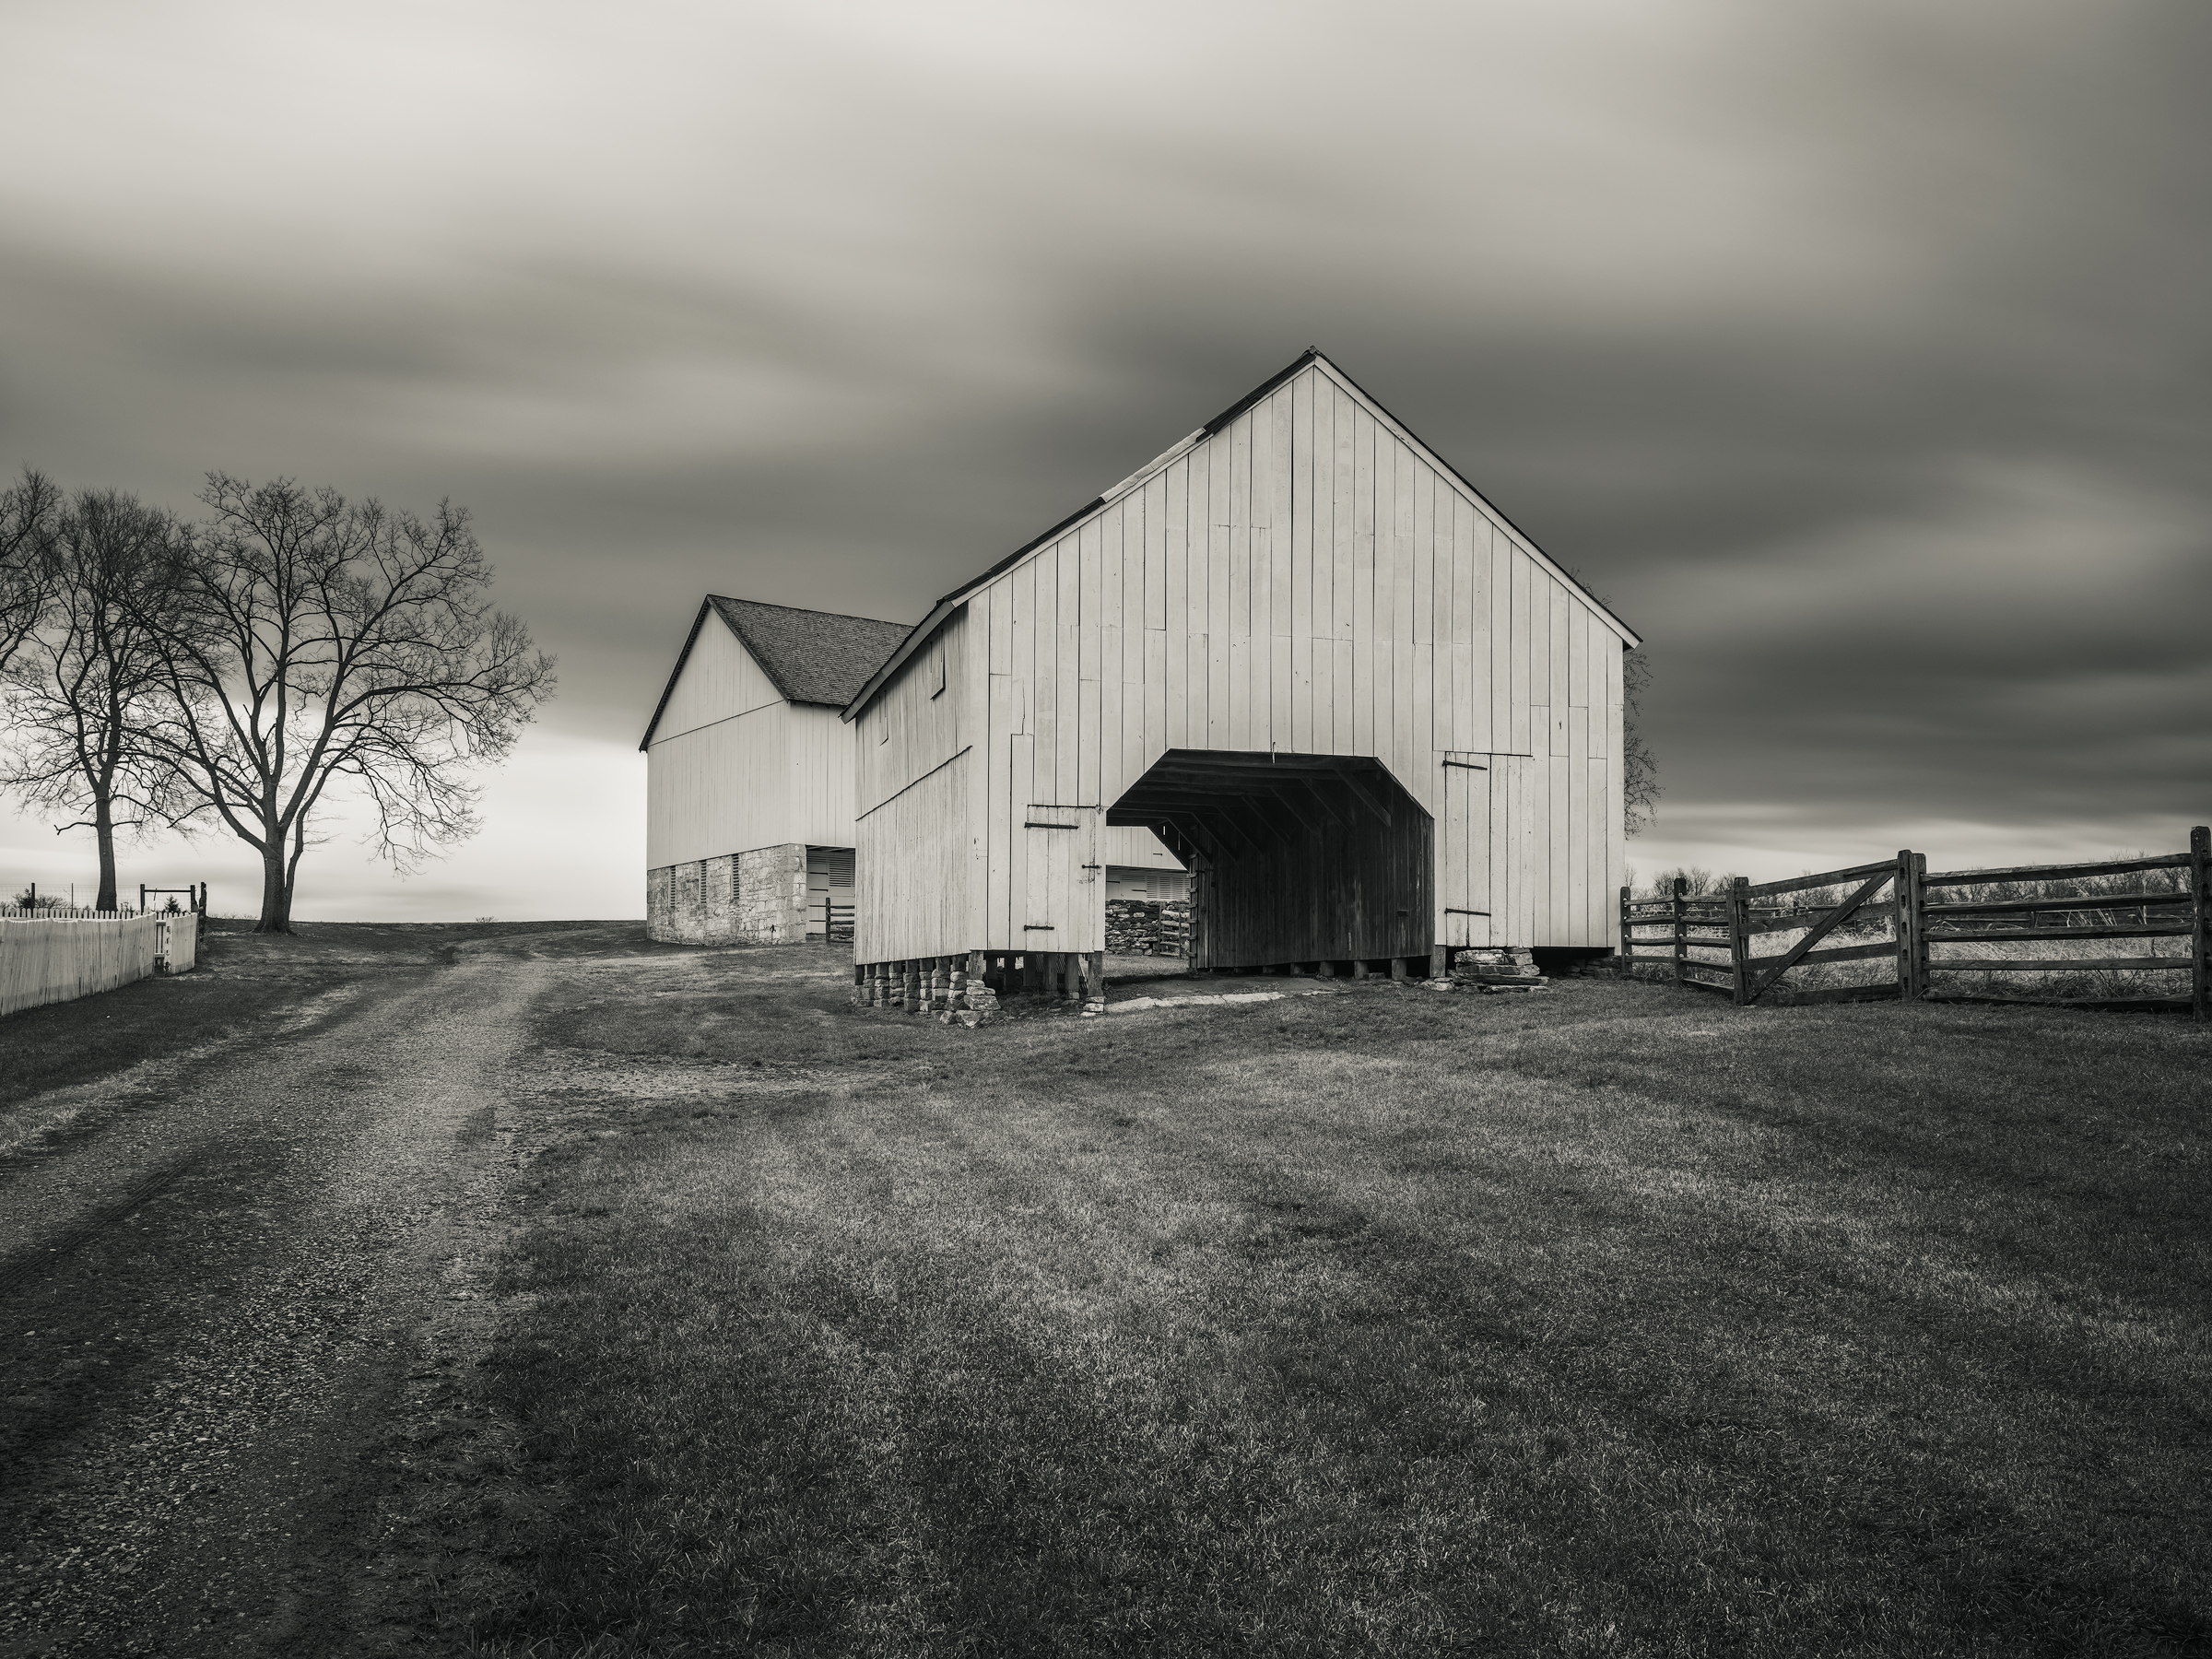 Poffenberger Barns, Antietam National Battlefield, MD - Fuji GFX50s and a Fujinon GF23mm f4 R WR | ISO 100 at f11 for 120 seconds.